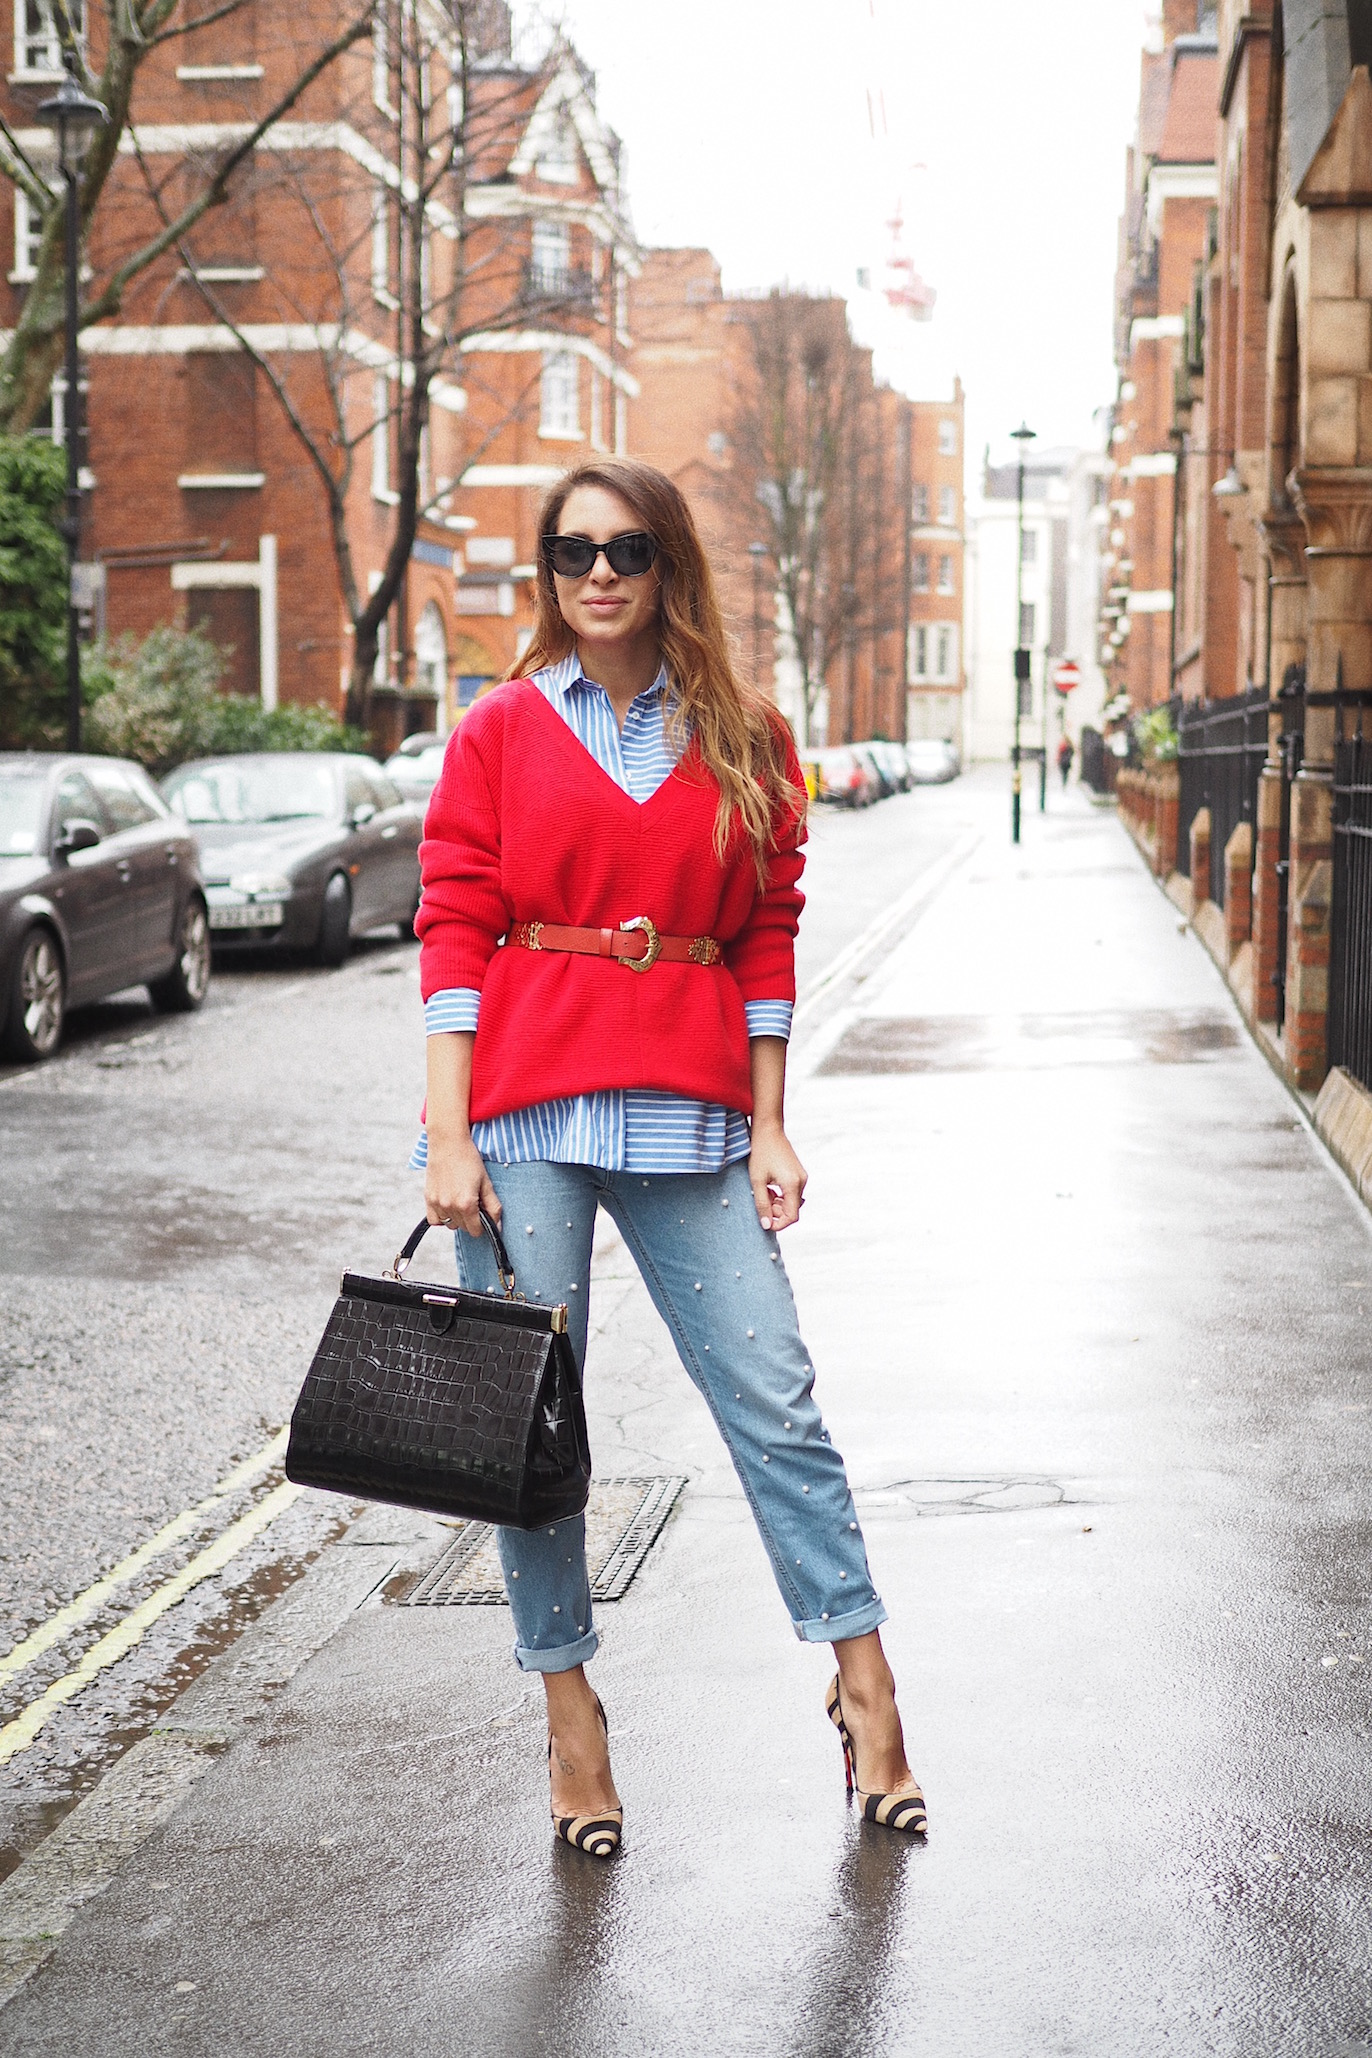 Denim & Pearls london street style aspinal of london